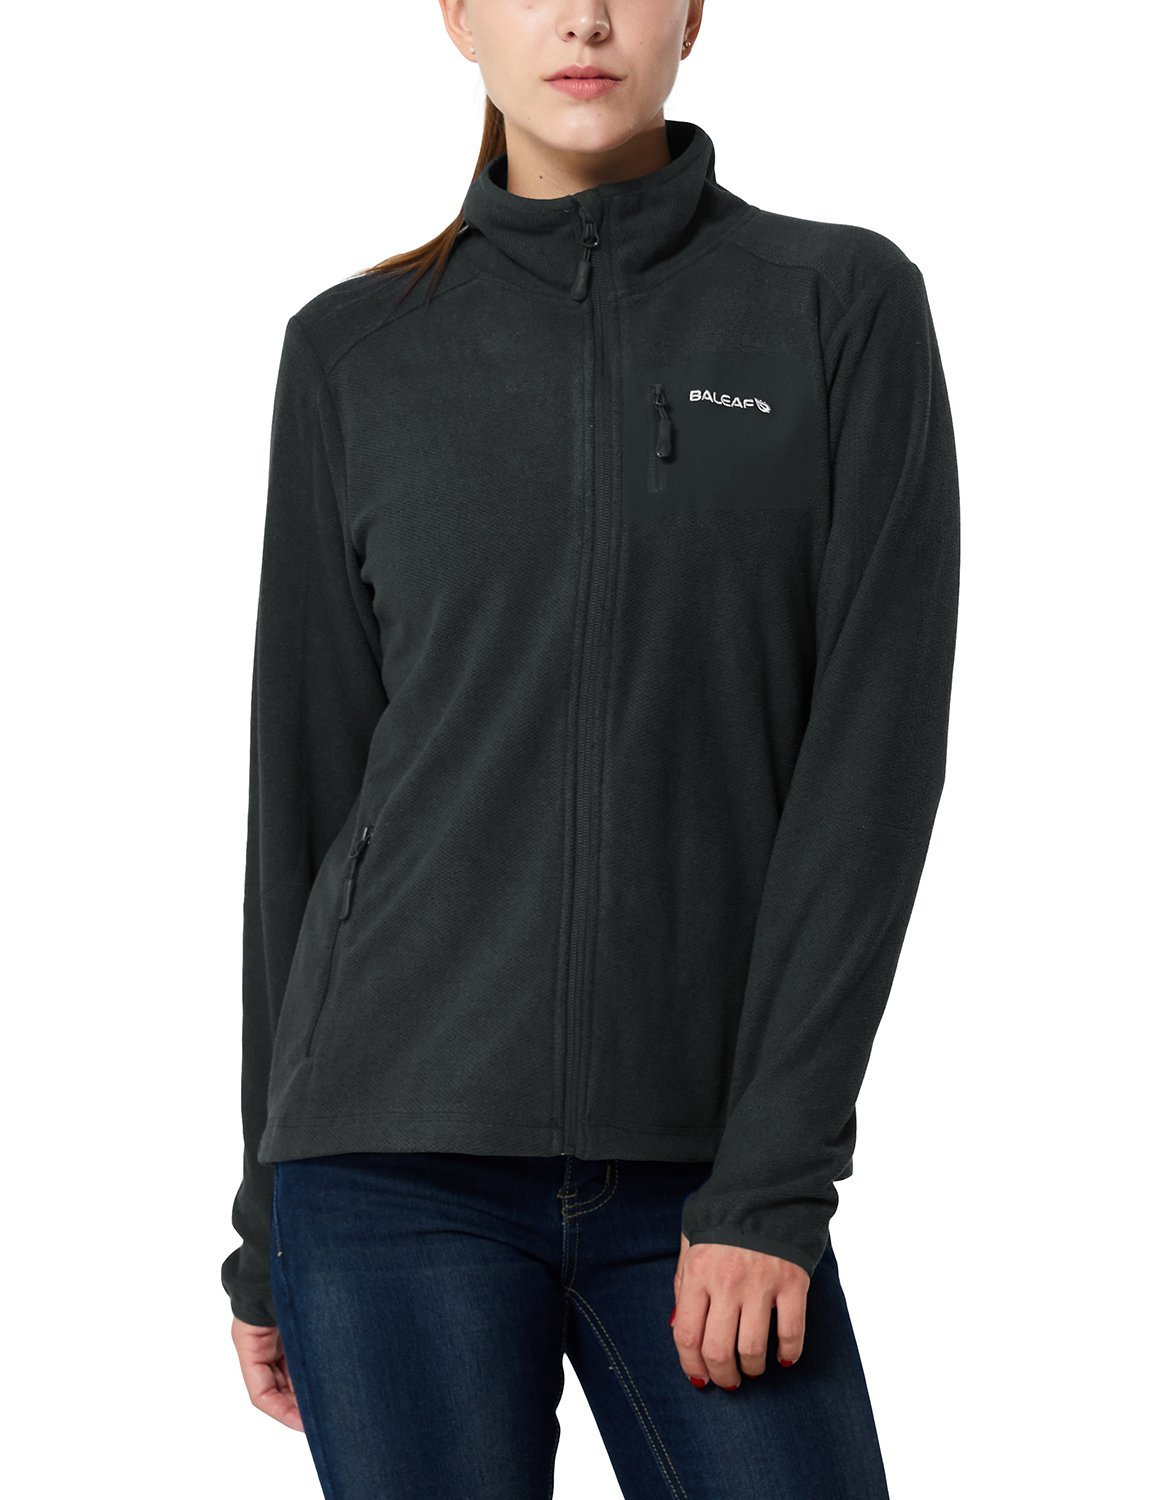 Baleaf Women's Full Zip Mid-Weight Fleece Jacket Pullover Gray Black Size XL